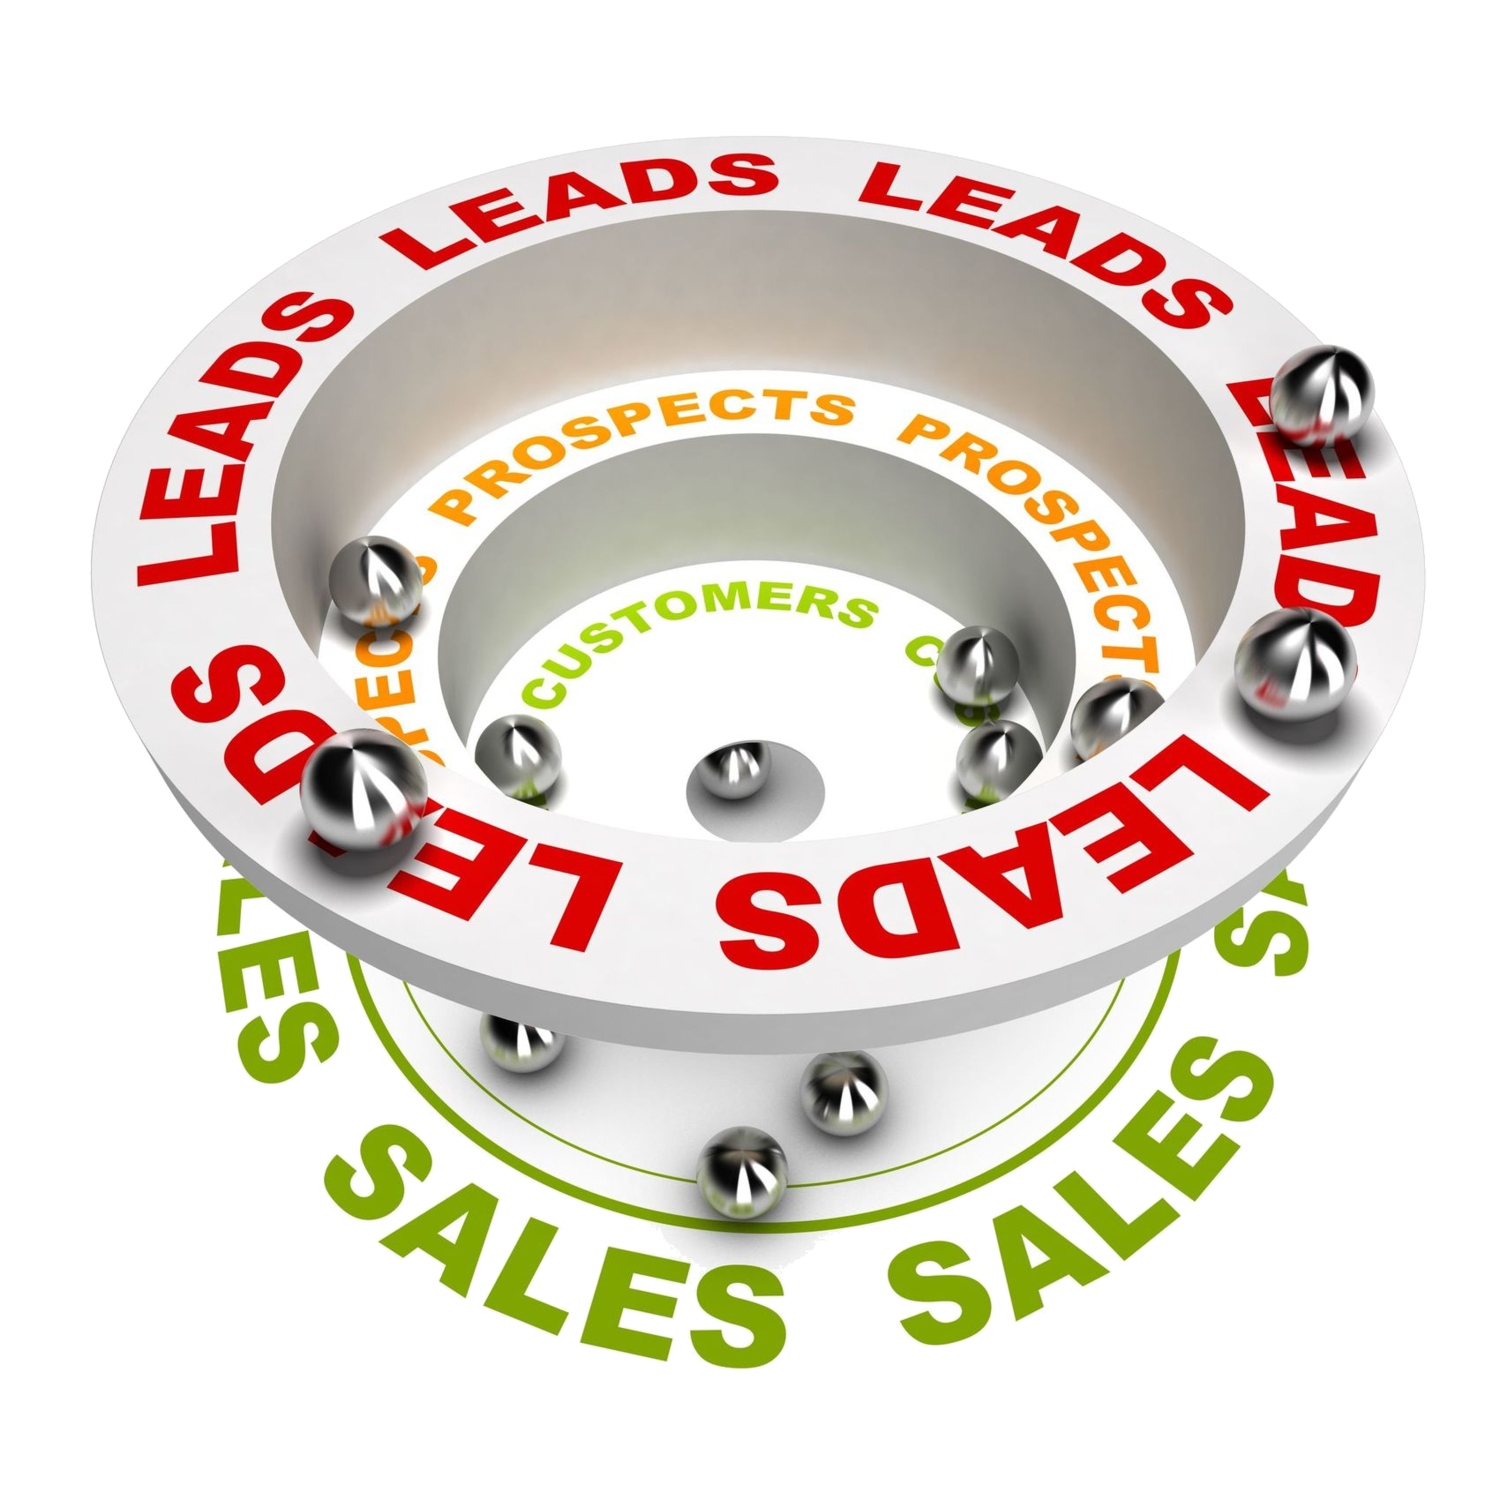 Advanced Sale Funnel Master Class